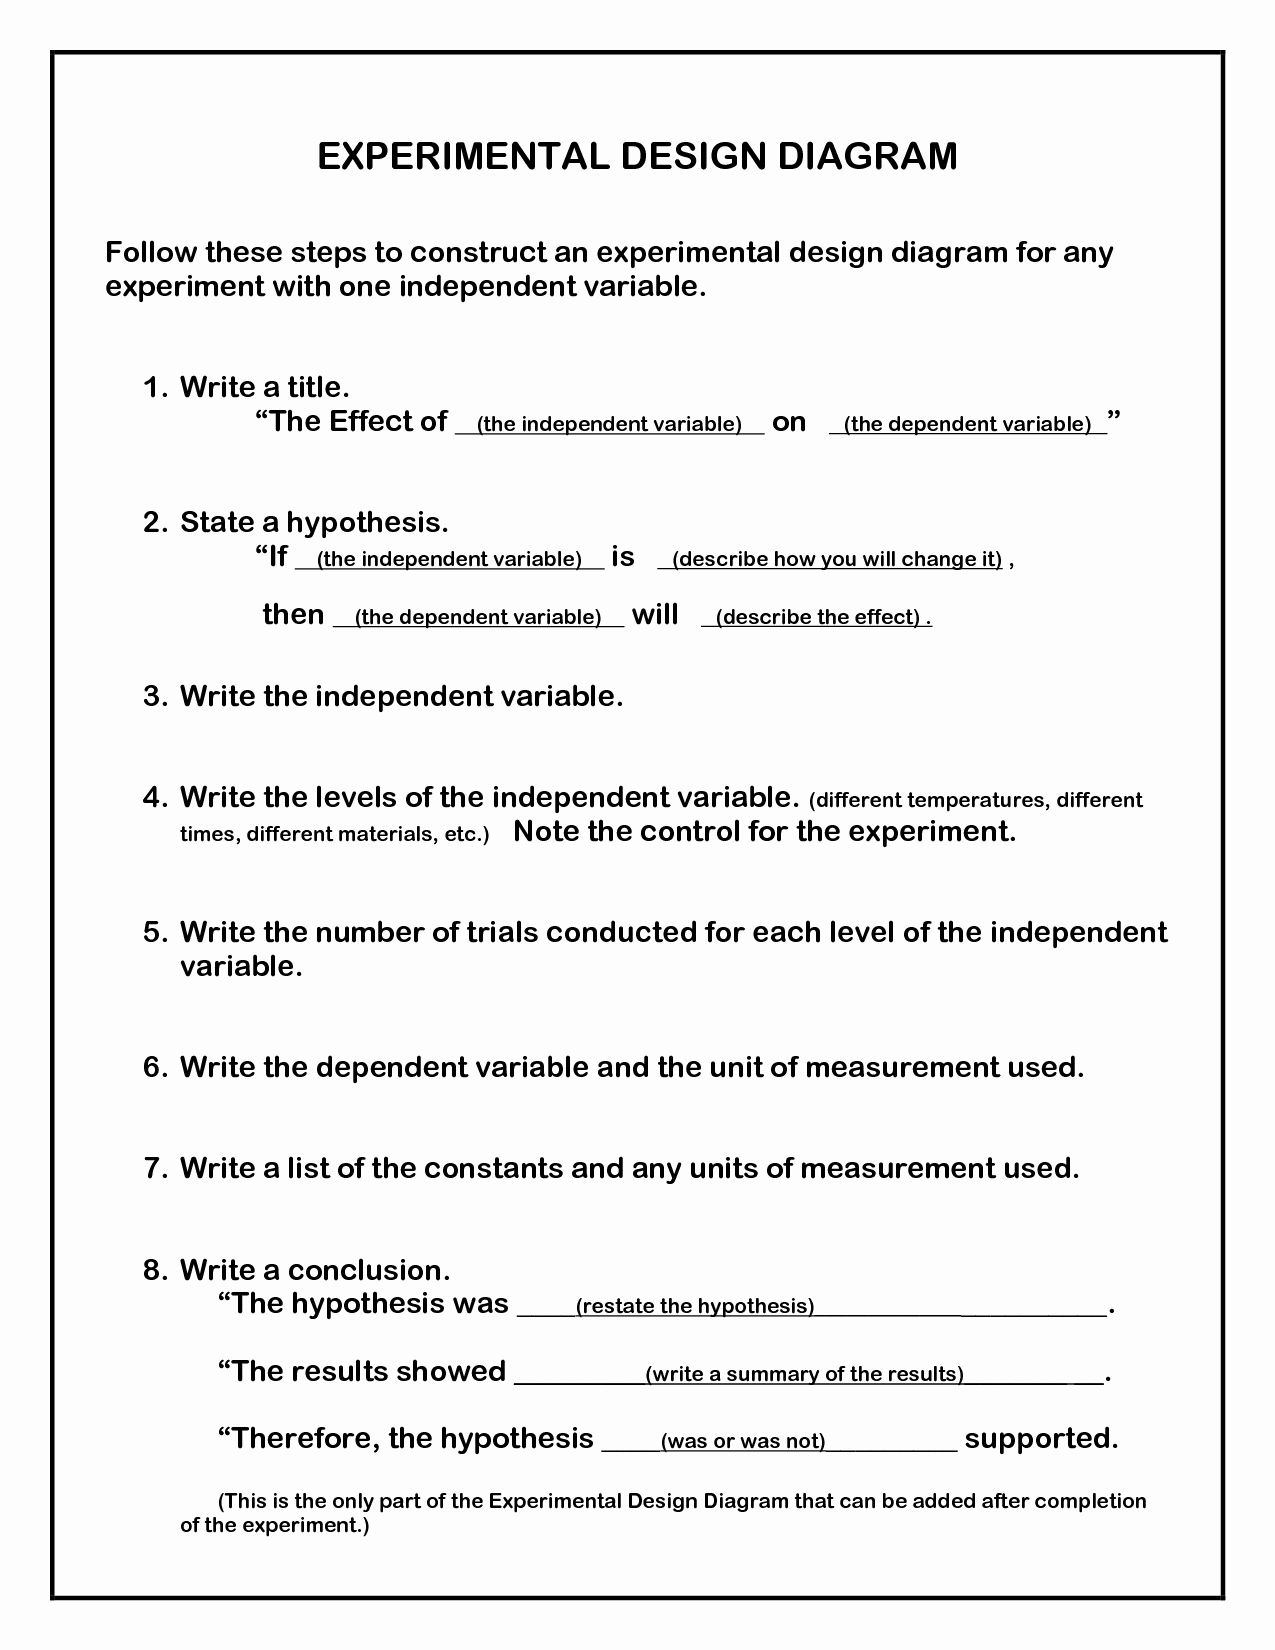 Experimental Design Worksheet Answers New Worksheet Science Worksheets Middle School Grass Fedjp